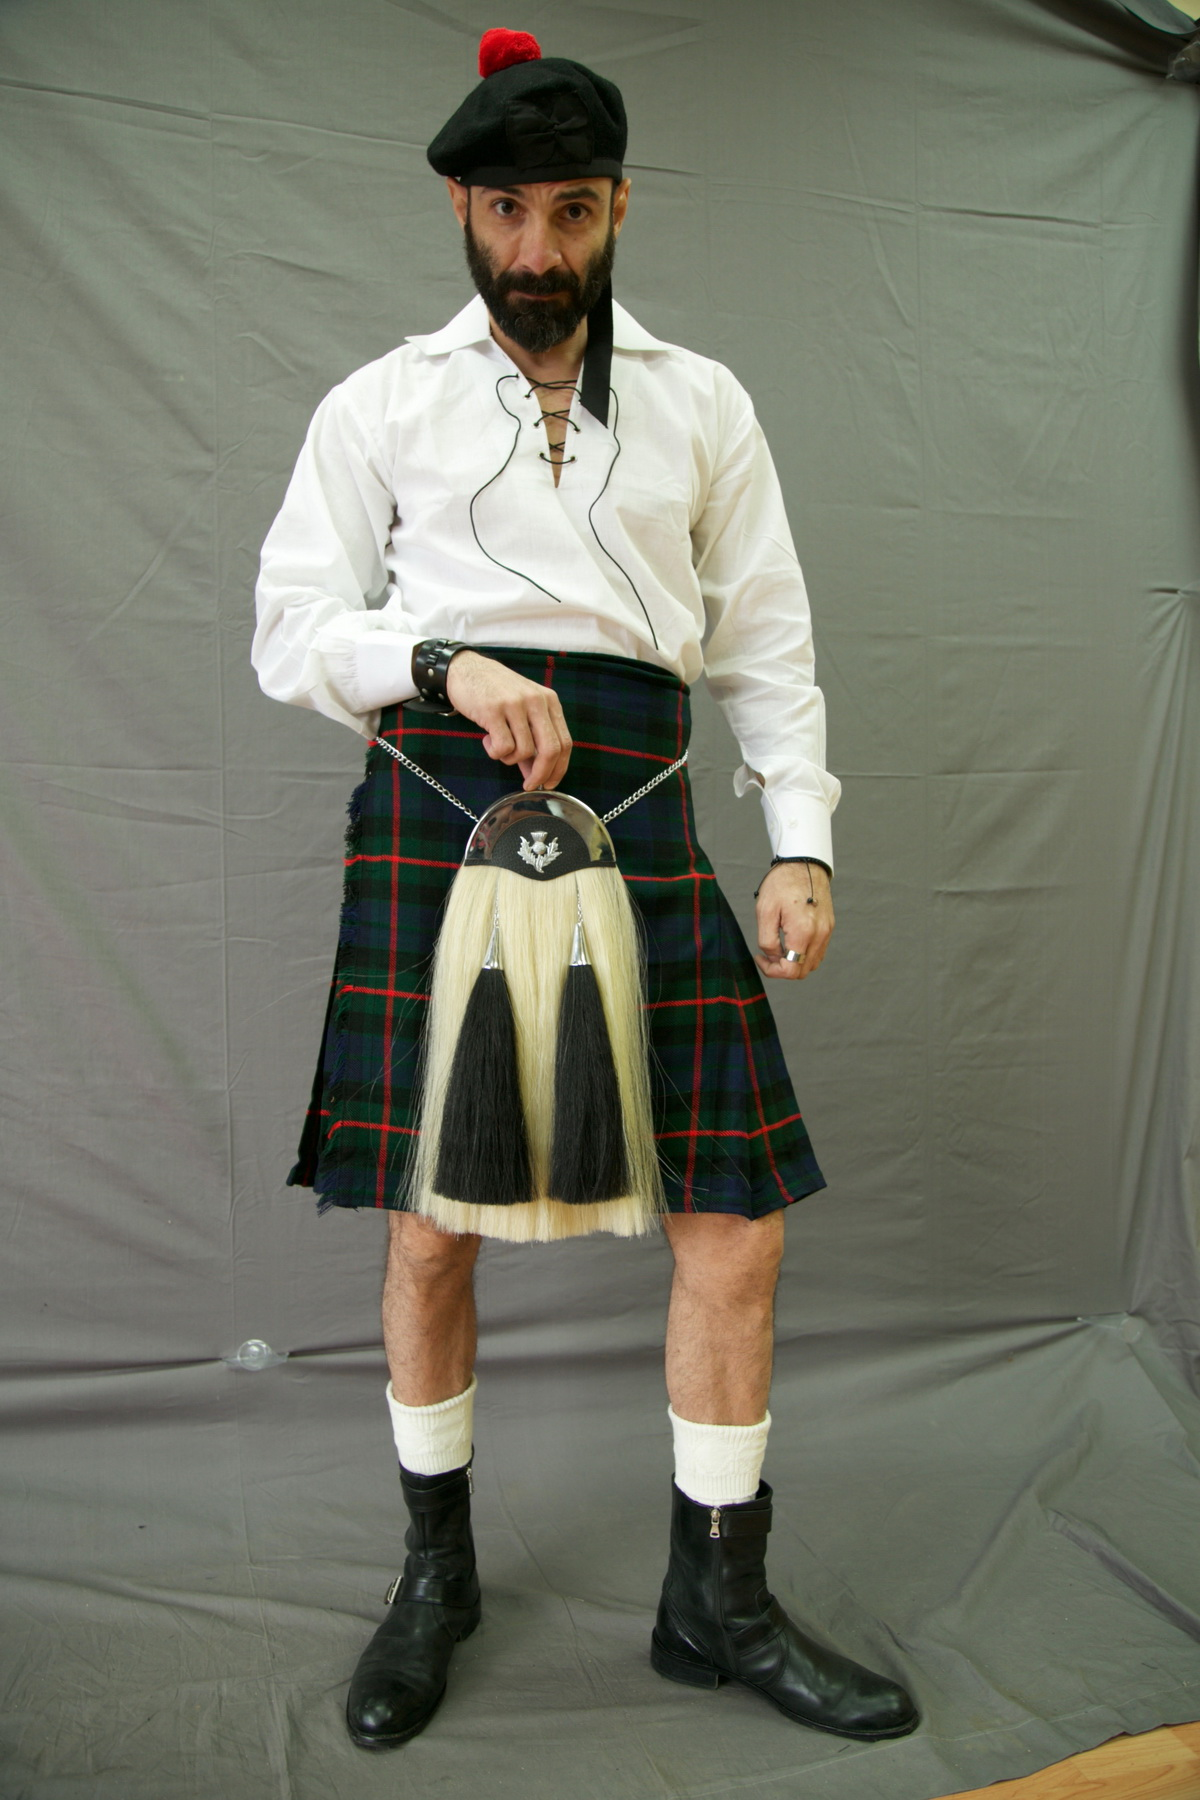 Barclay Hunting Modern Tartan Kilt with Sporran pose